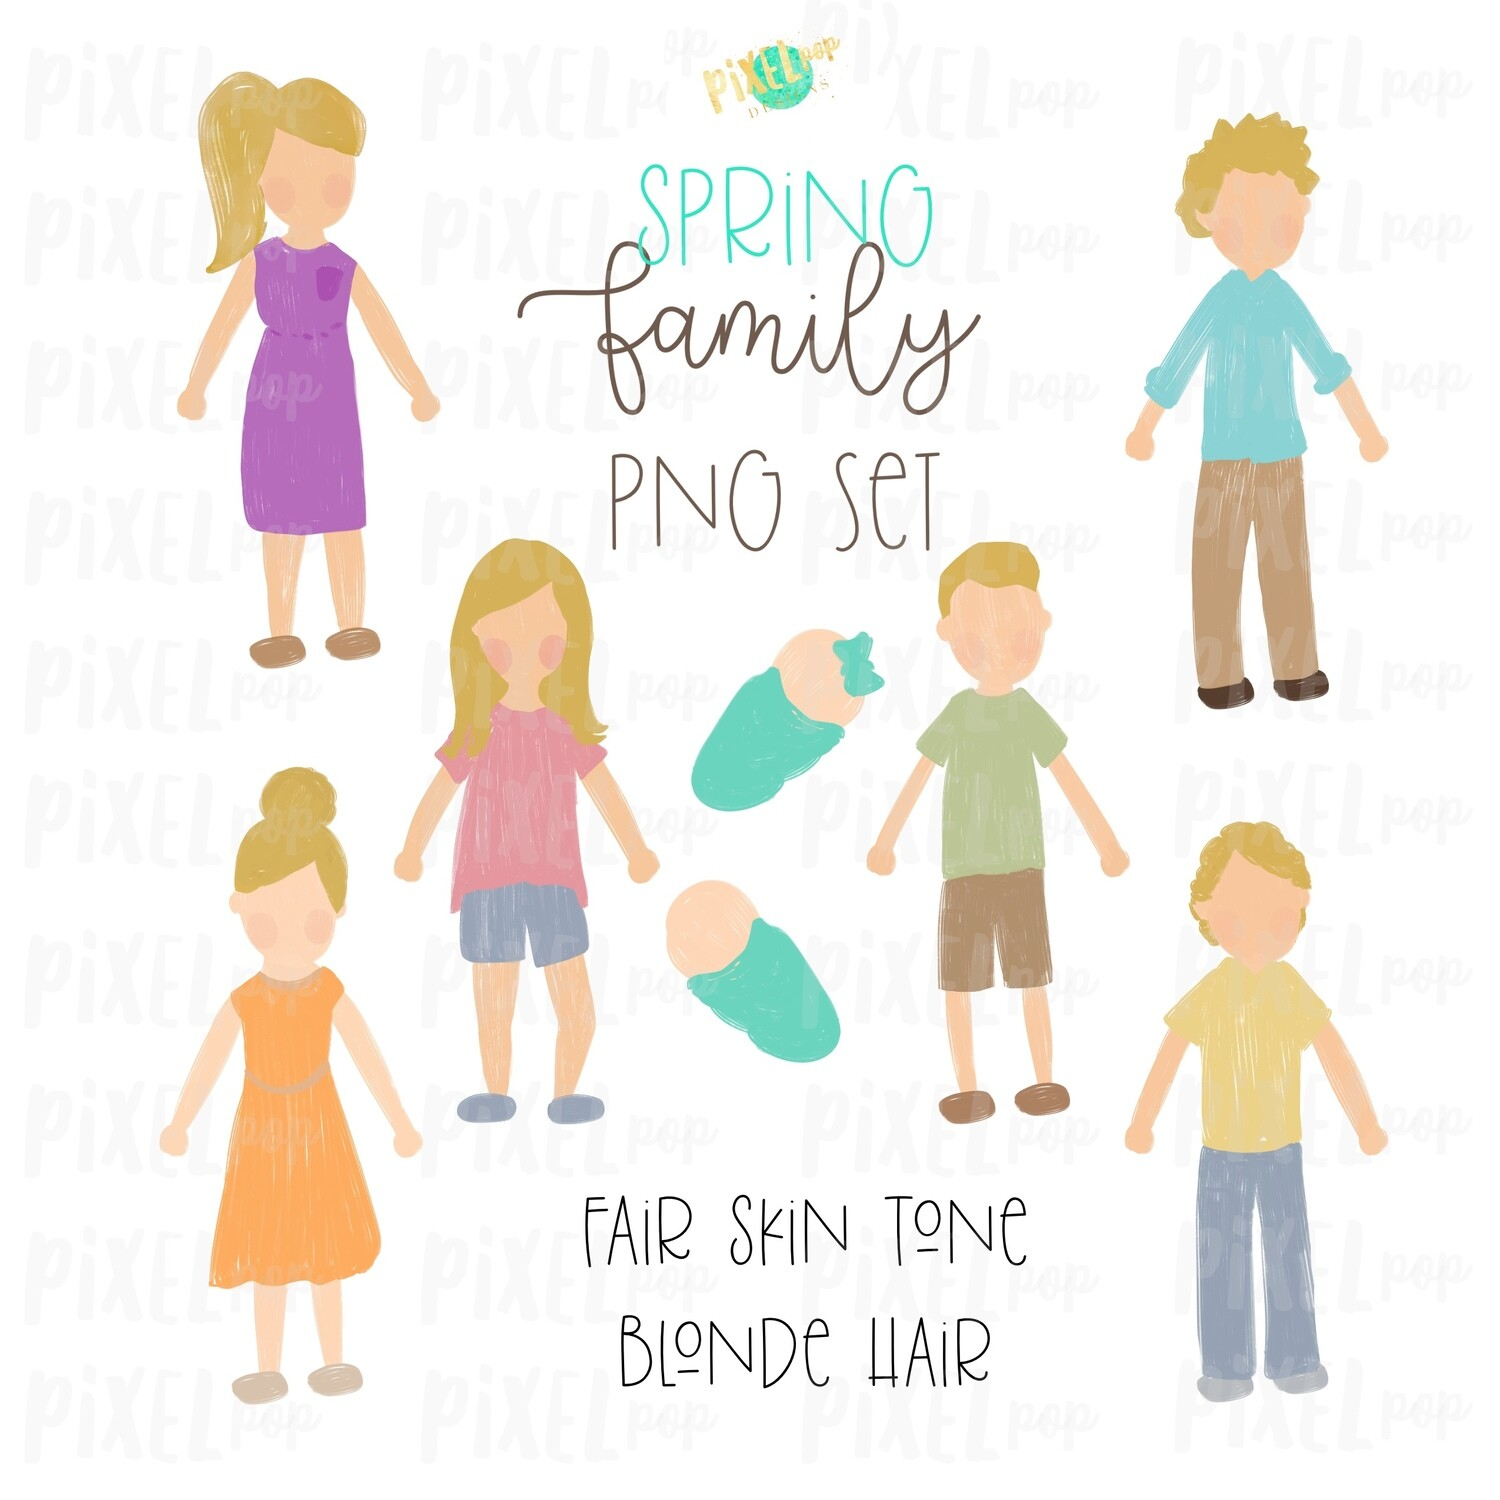 SPRING Fair Skin Blonde Hair Stick People Figure Family PNG Sublimation | Family Ornament | Family Portrait Images | Digital Download